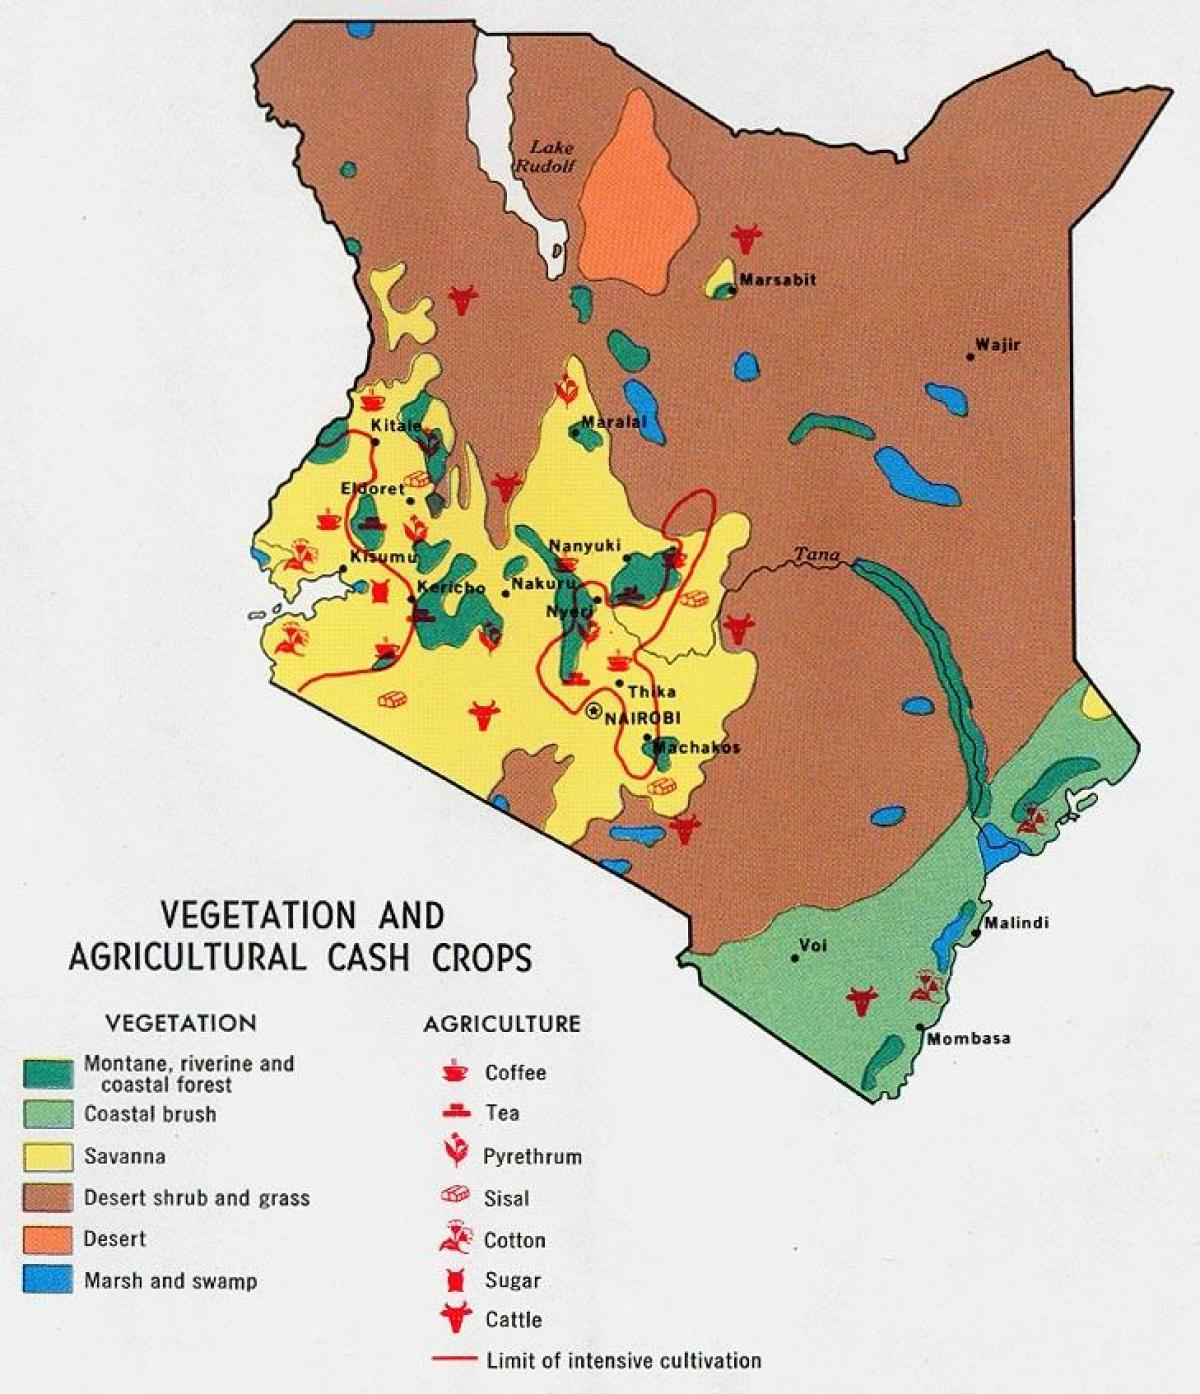 Map Of Africa Natural Resources.Kenya Natural Resources Map Map Of Kenya Natural Resources